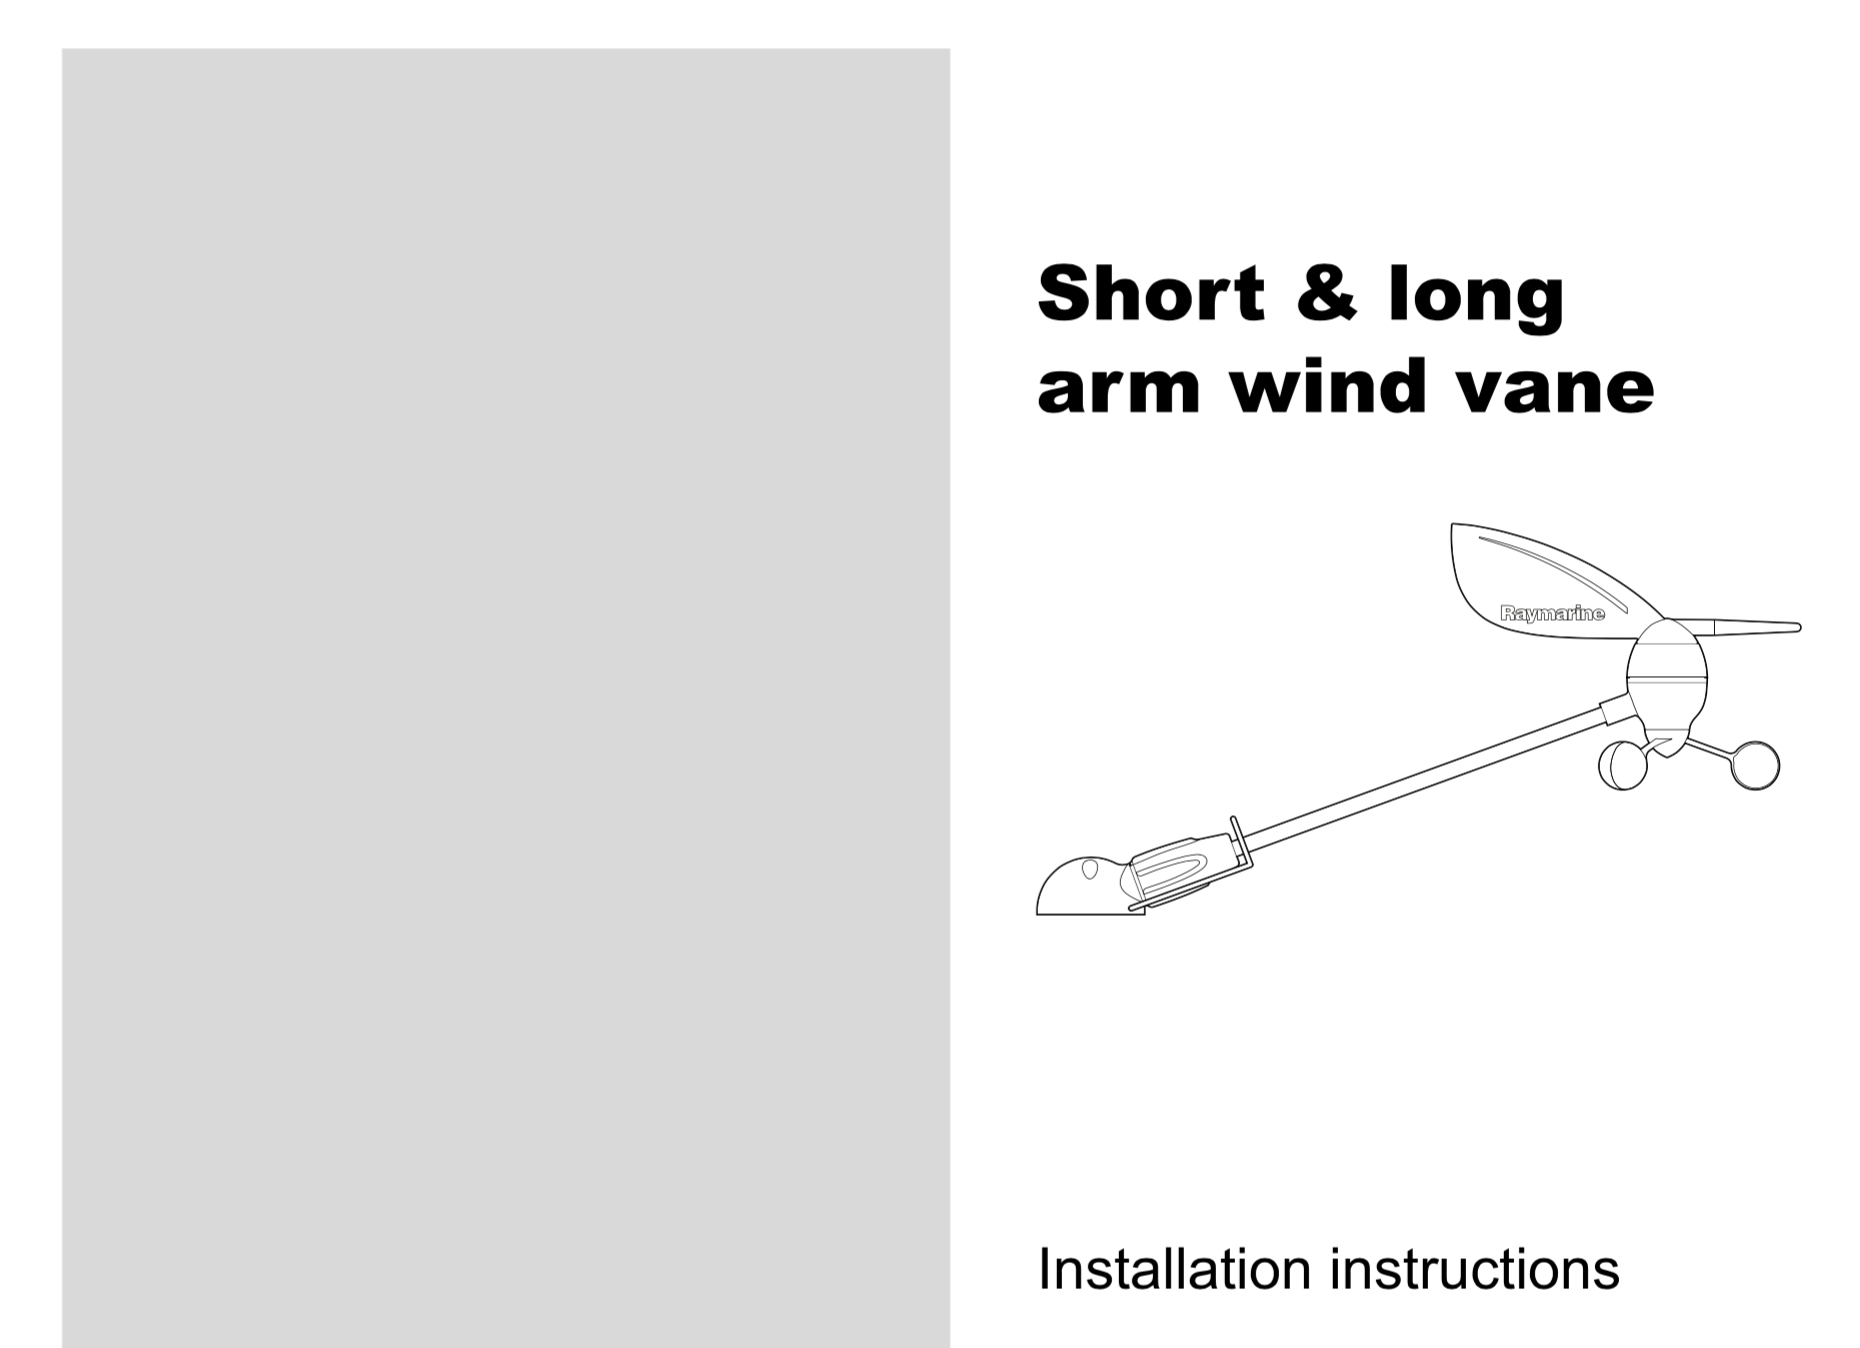 short arm vane wind transducer manual